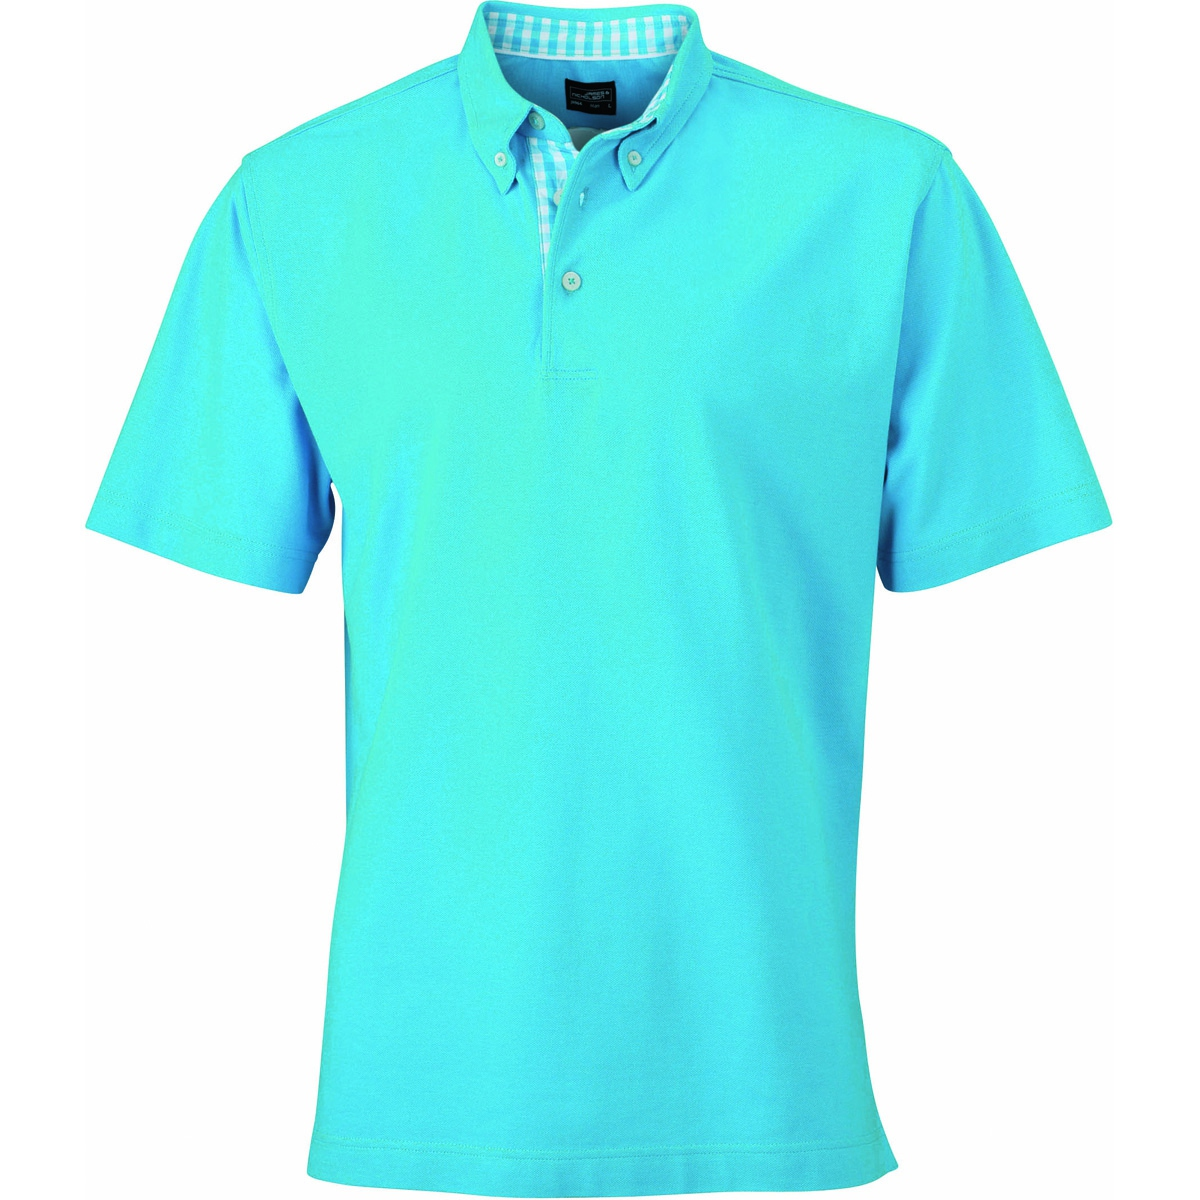 Polo inserts vichy HOMME JN964 - bleu turquoise